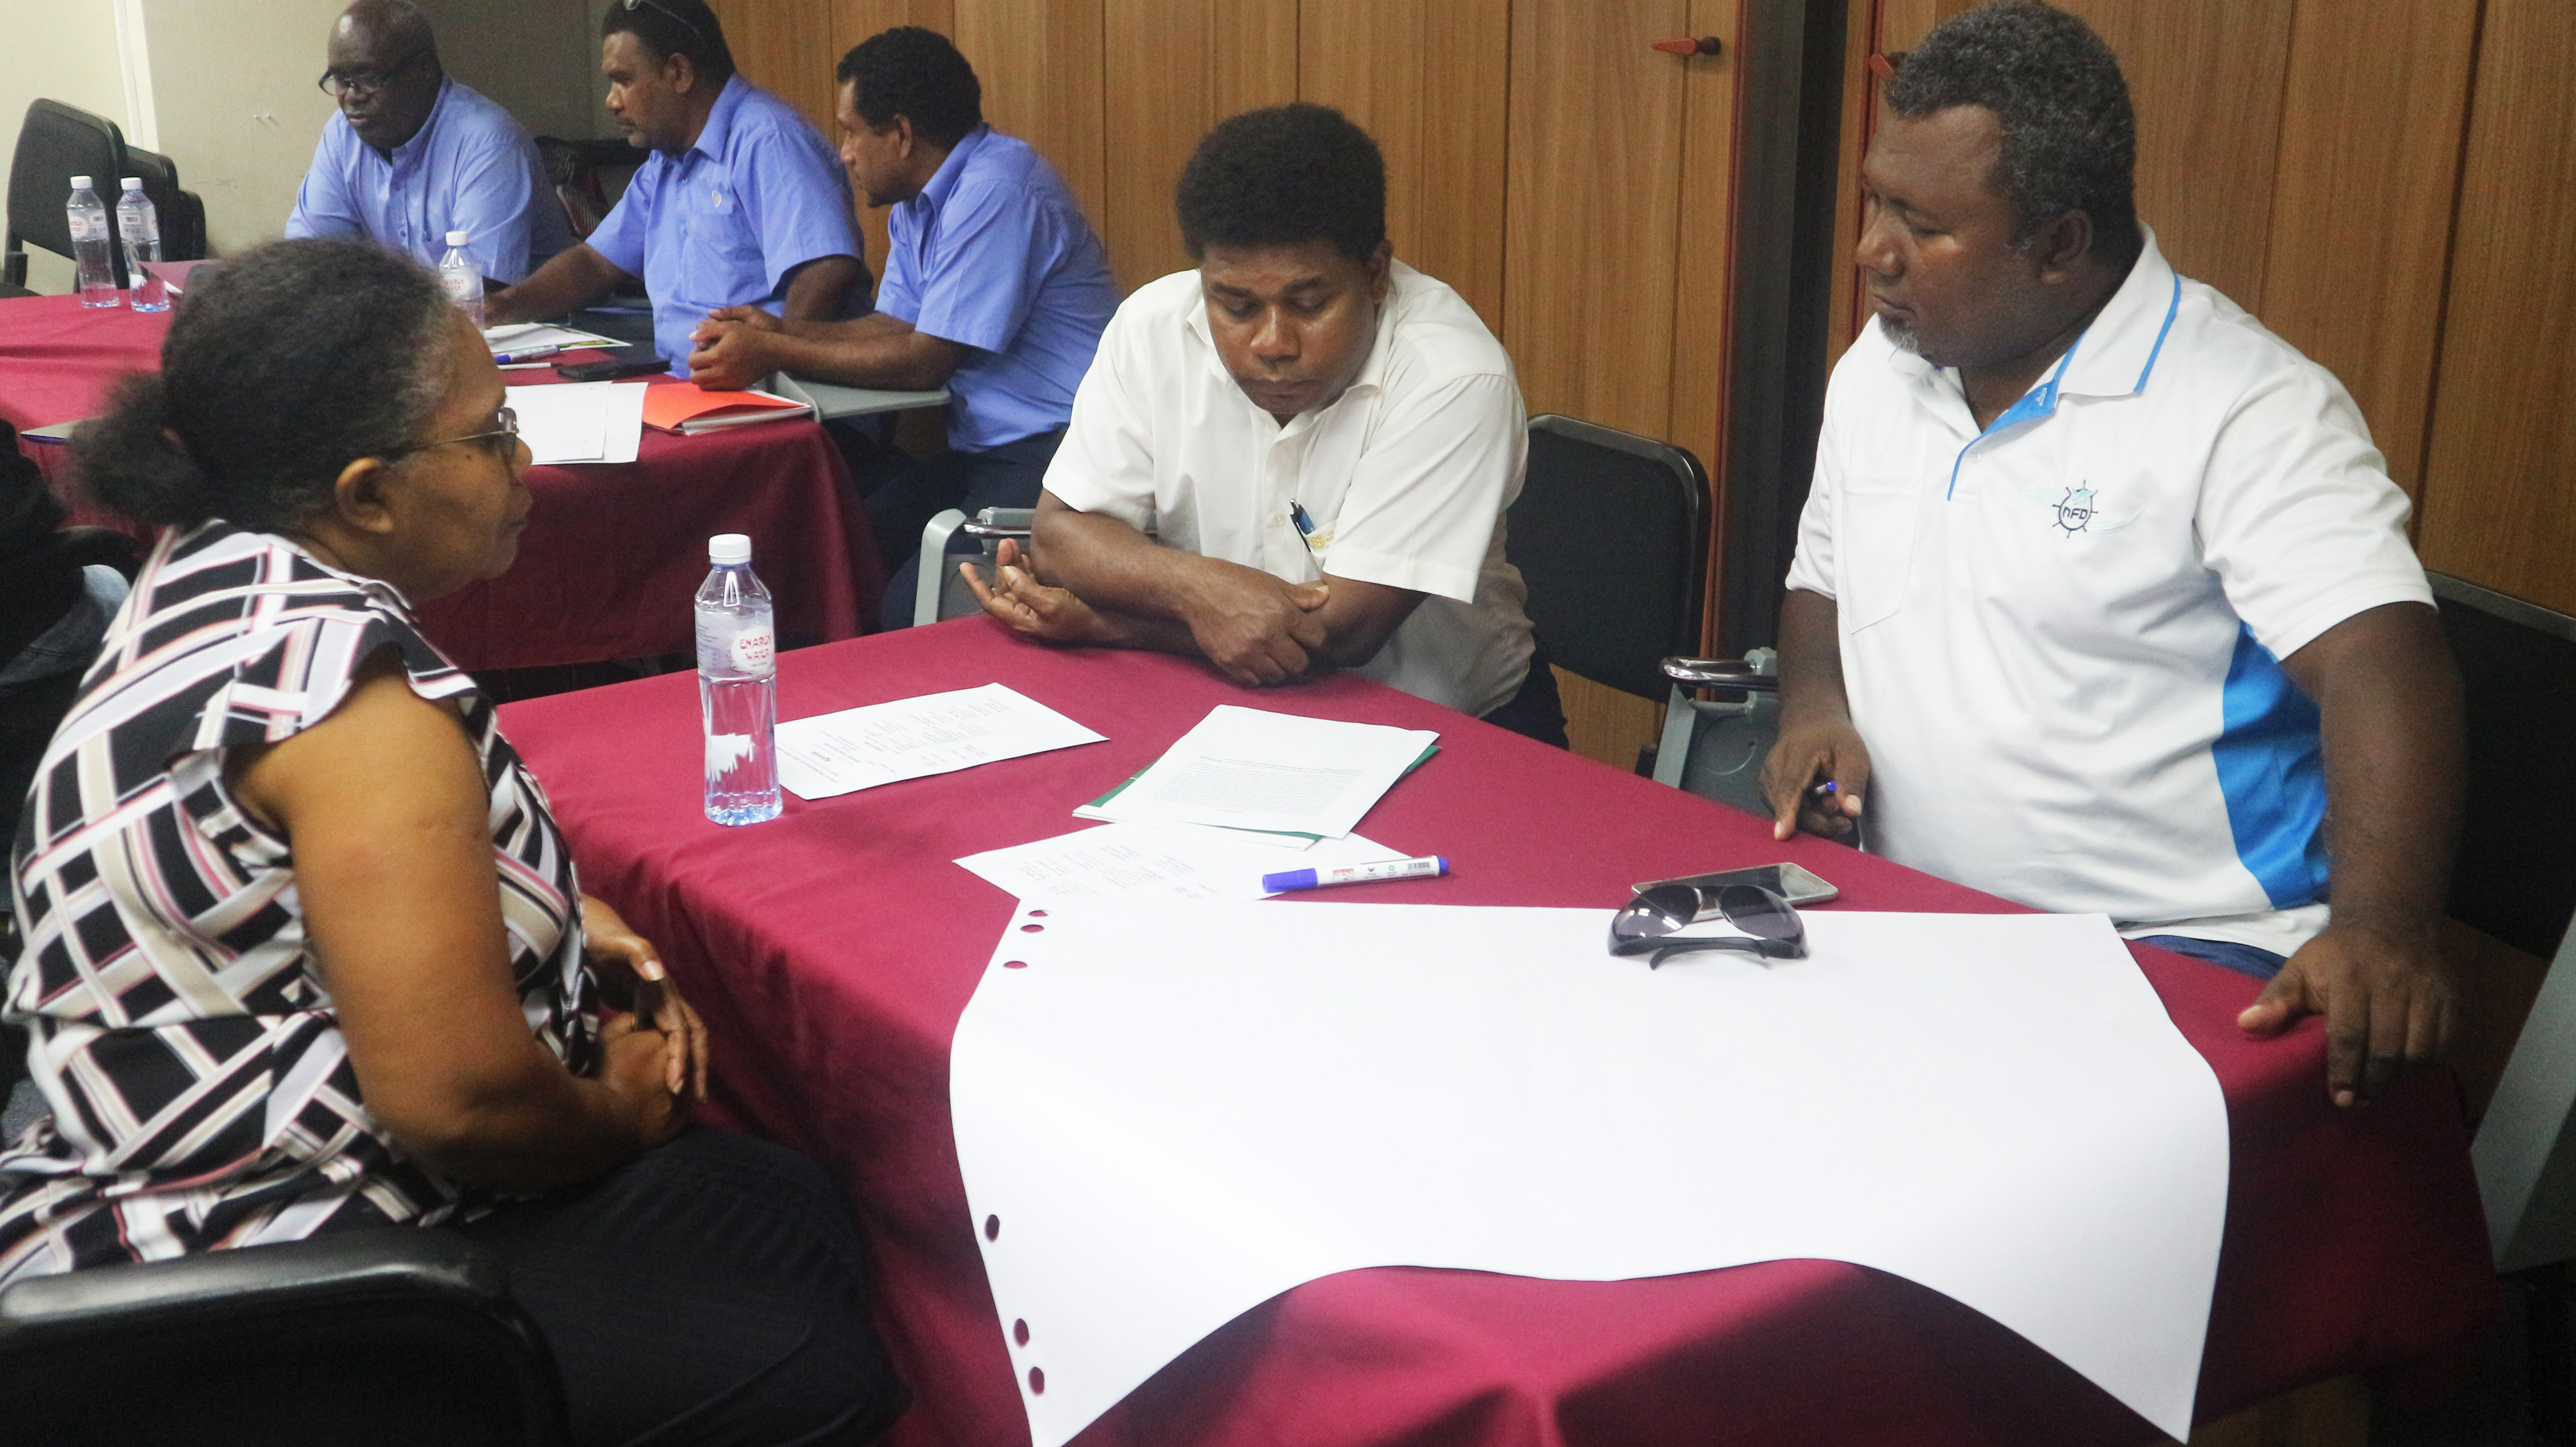 Tom Ha'aute, CBSI Senior Analyst for Financial Regulatons System Dept (FSRD) participating in a discussion with some of the CU executive members